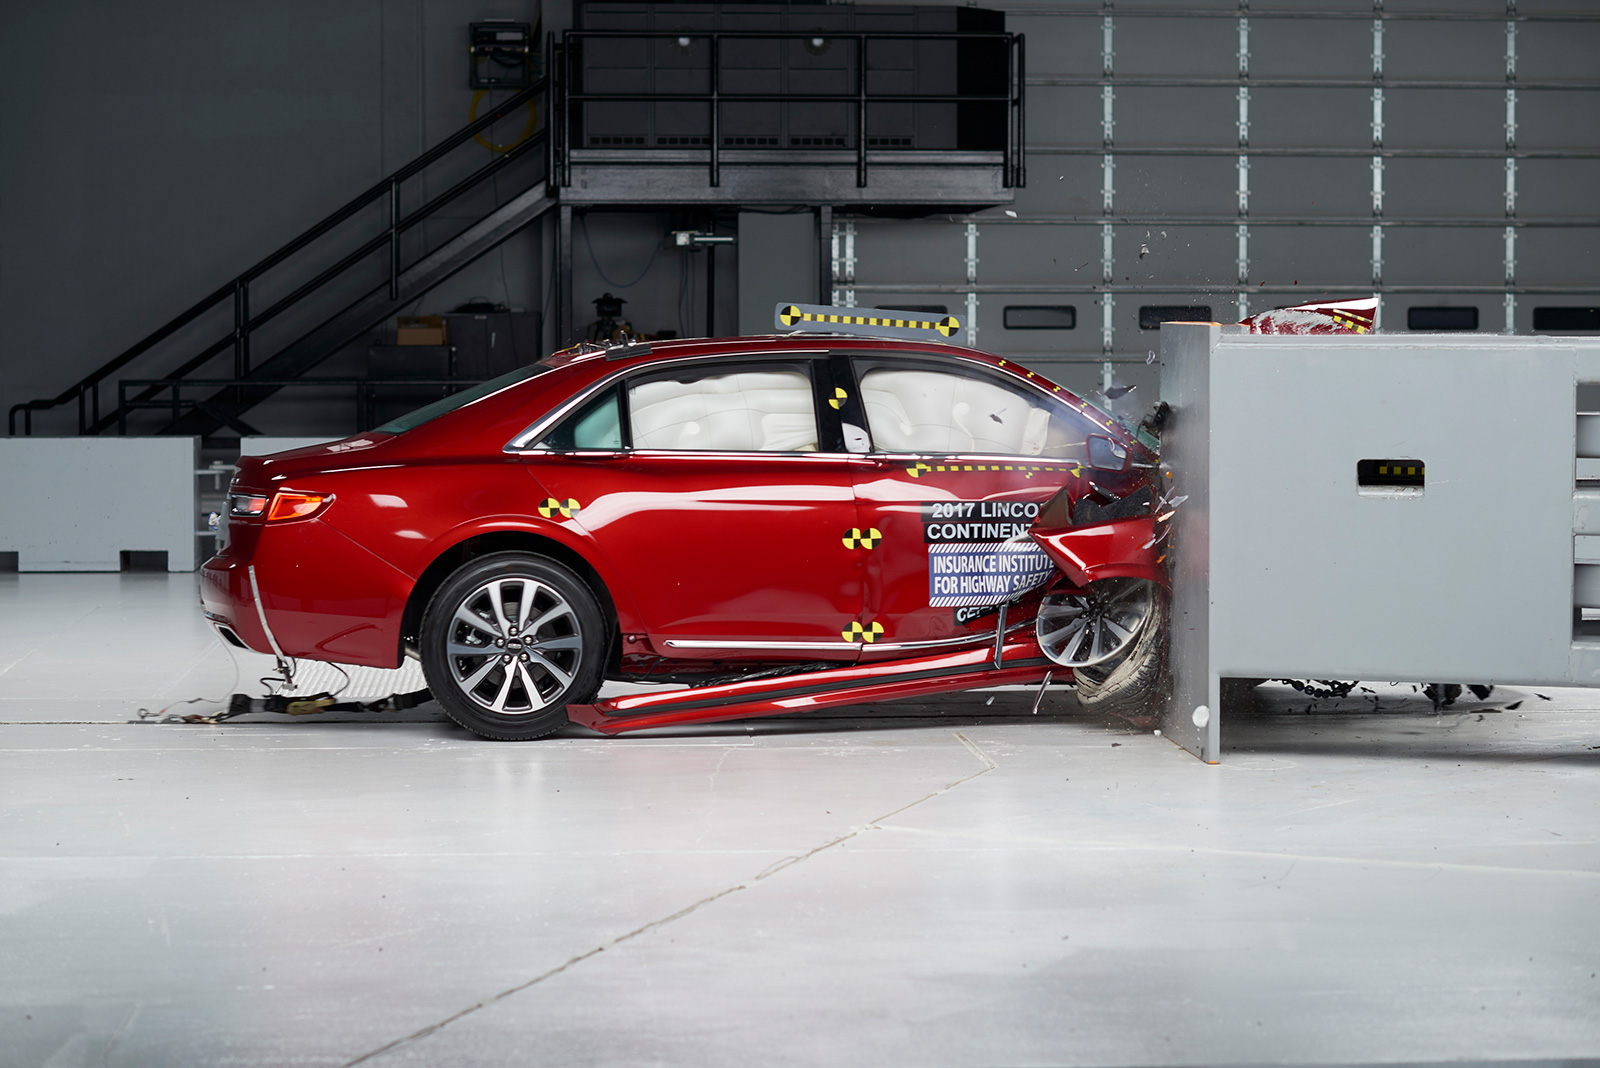 2017 Lincoln Continental Iihs Crash Test 01